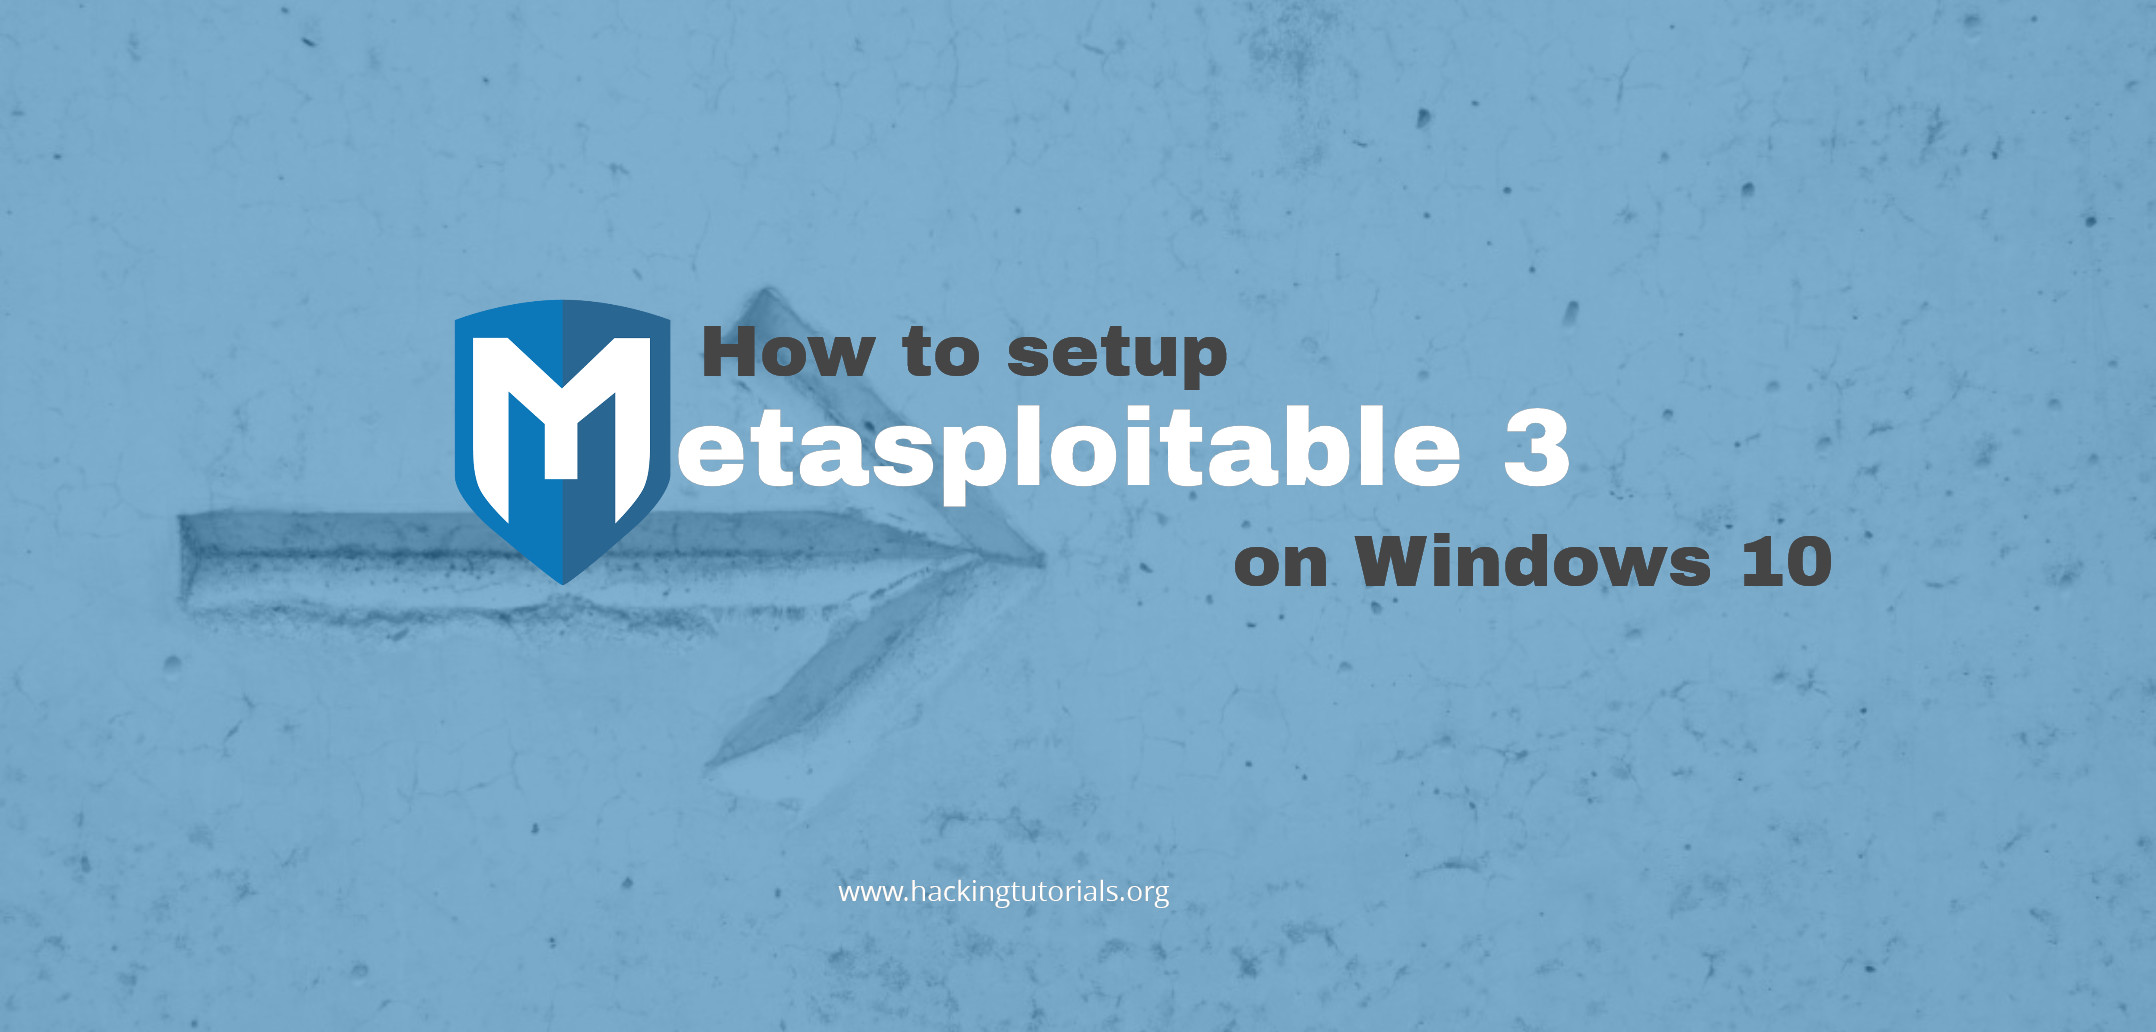 How to setup Metasploitable 3 on Windows 10 - Hacking Tutorials